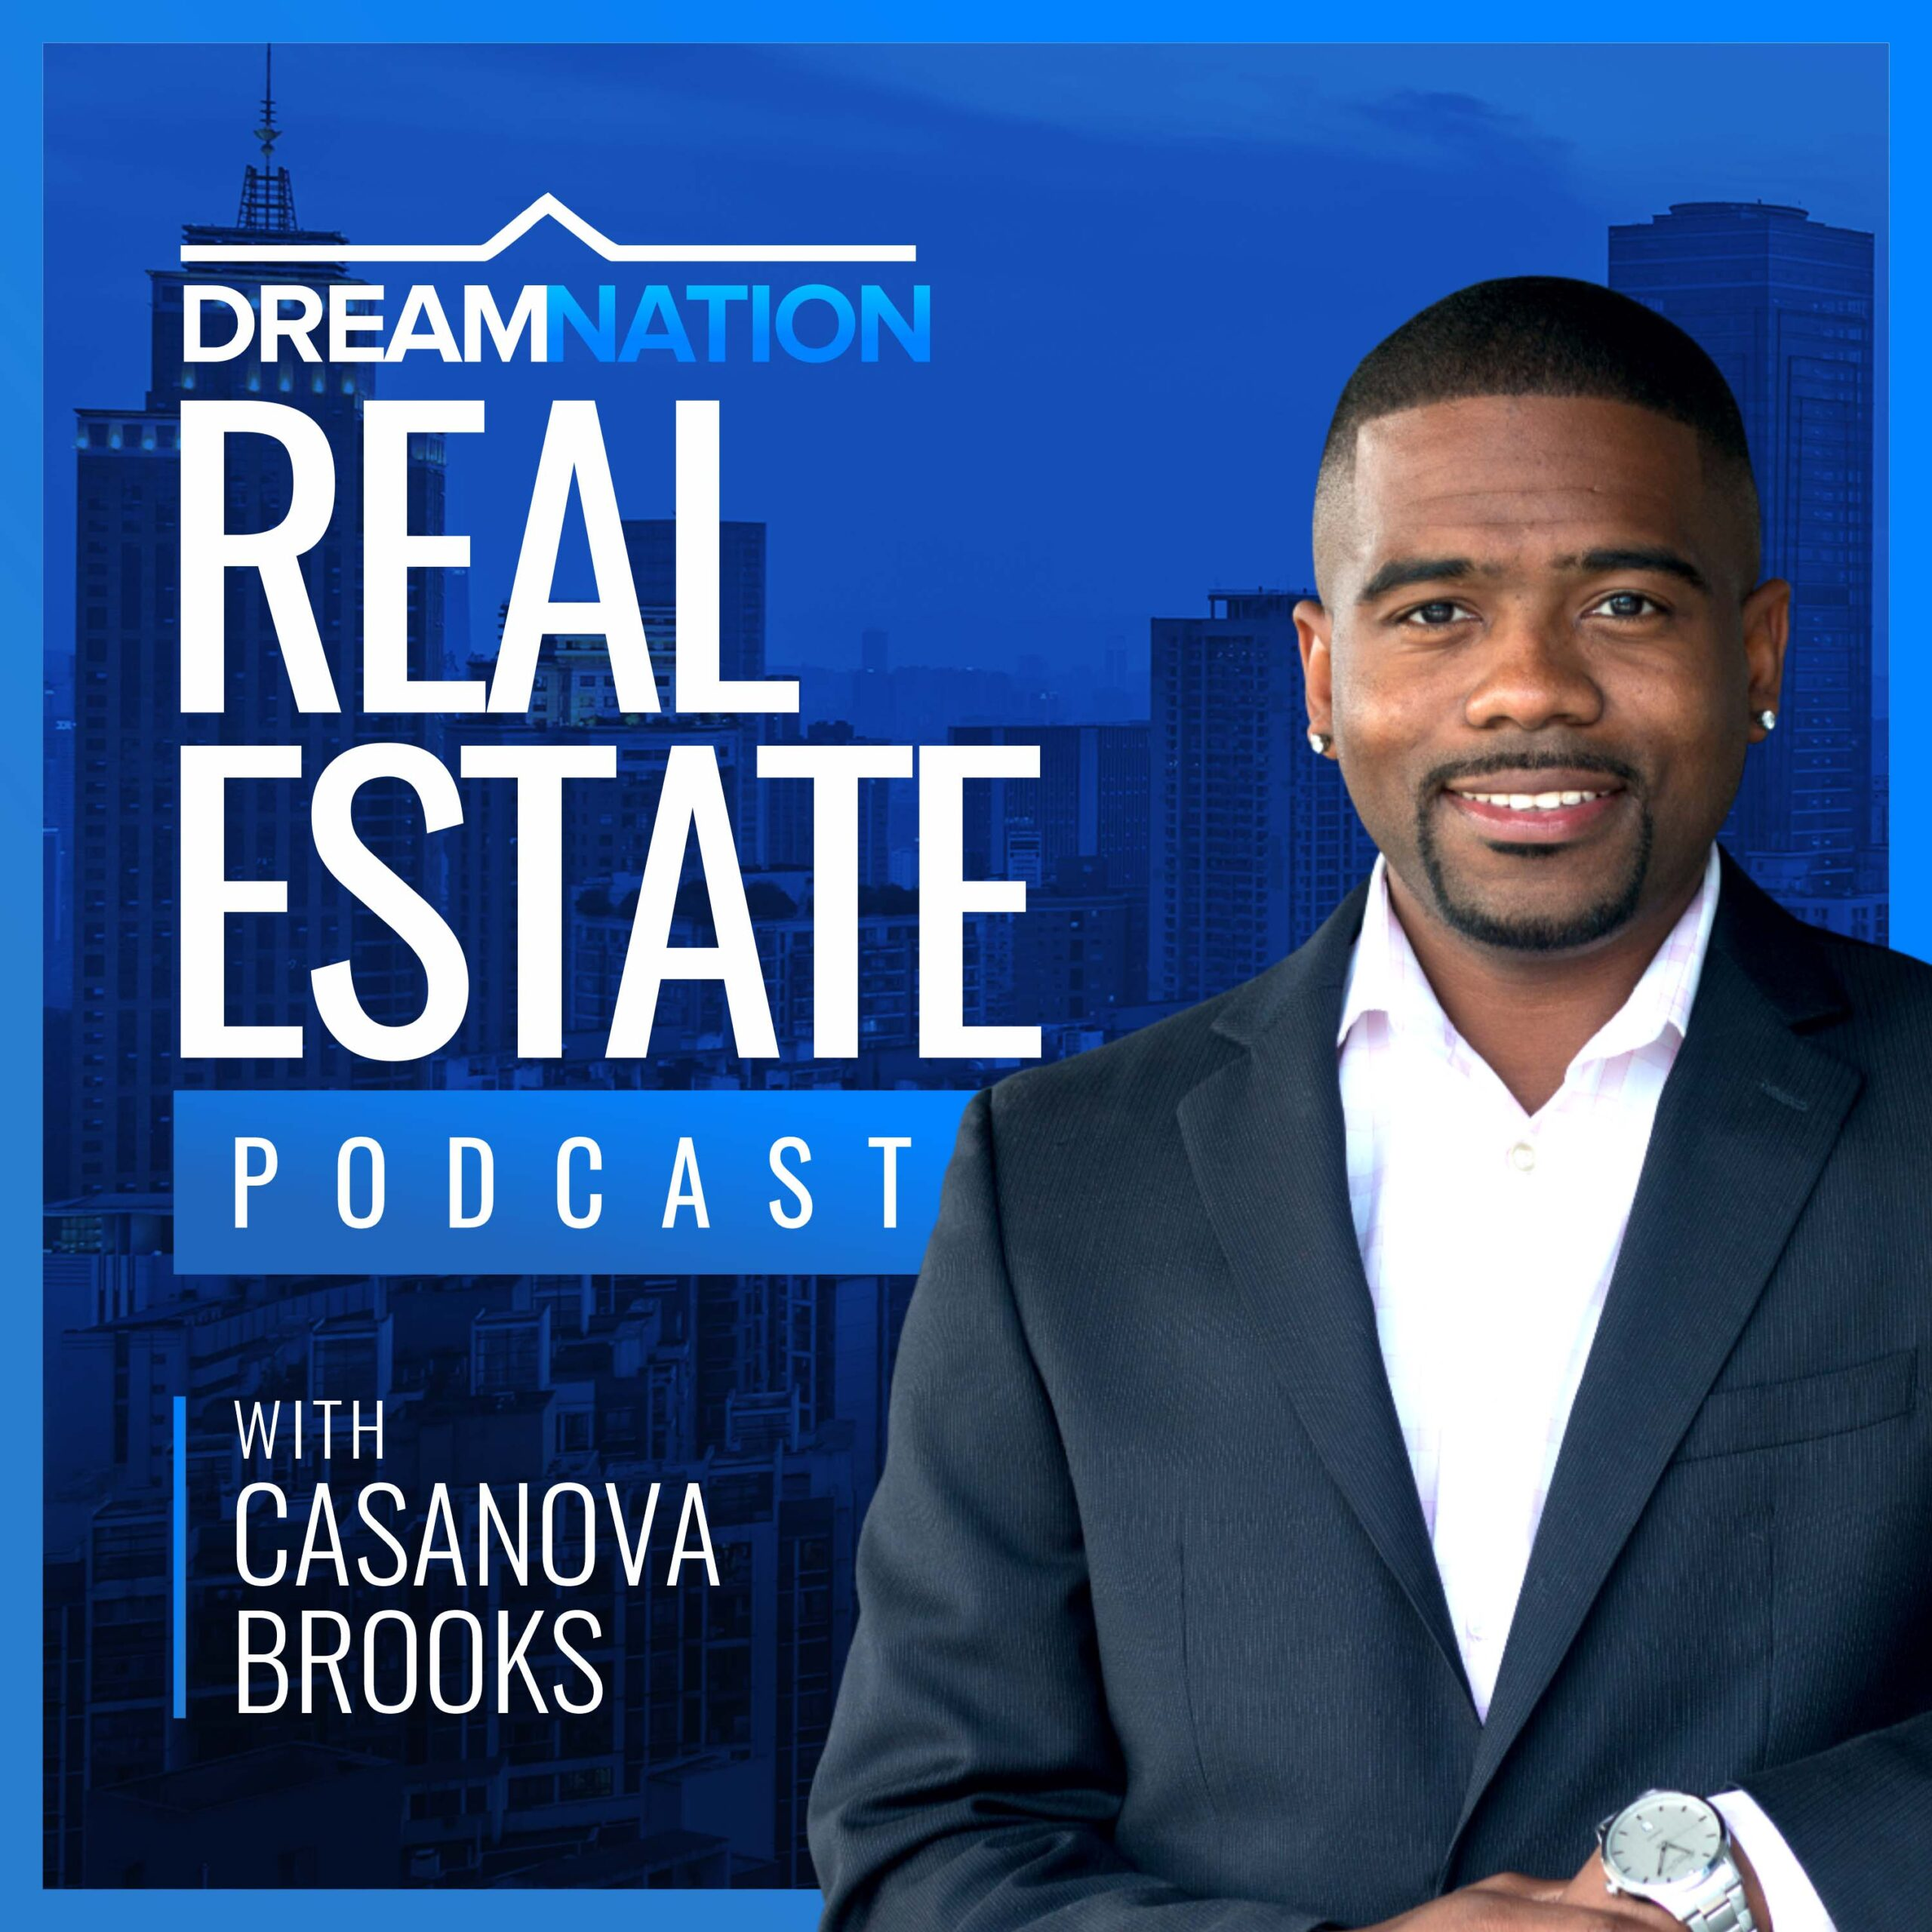 Dreamnation Real Estate